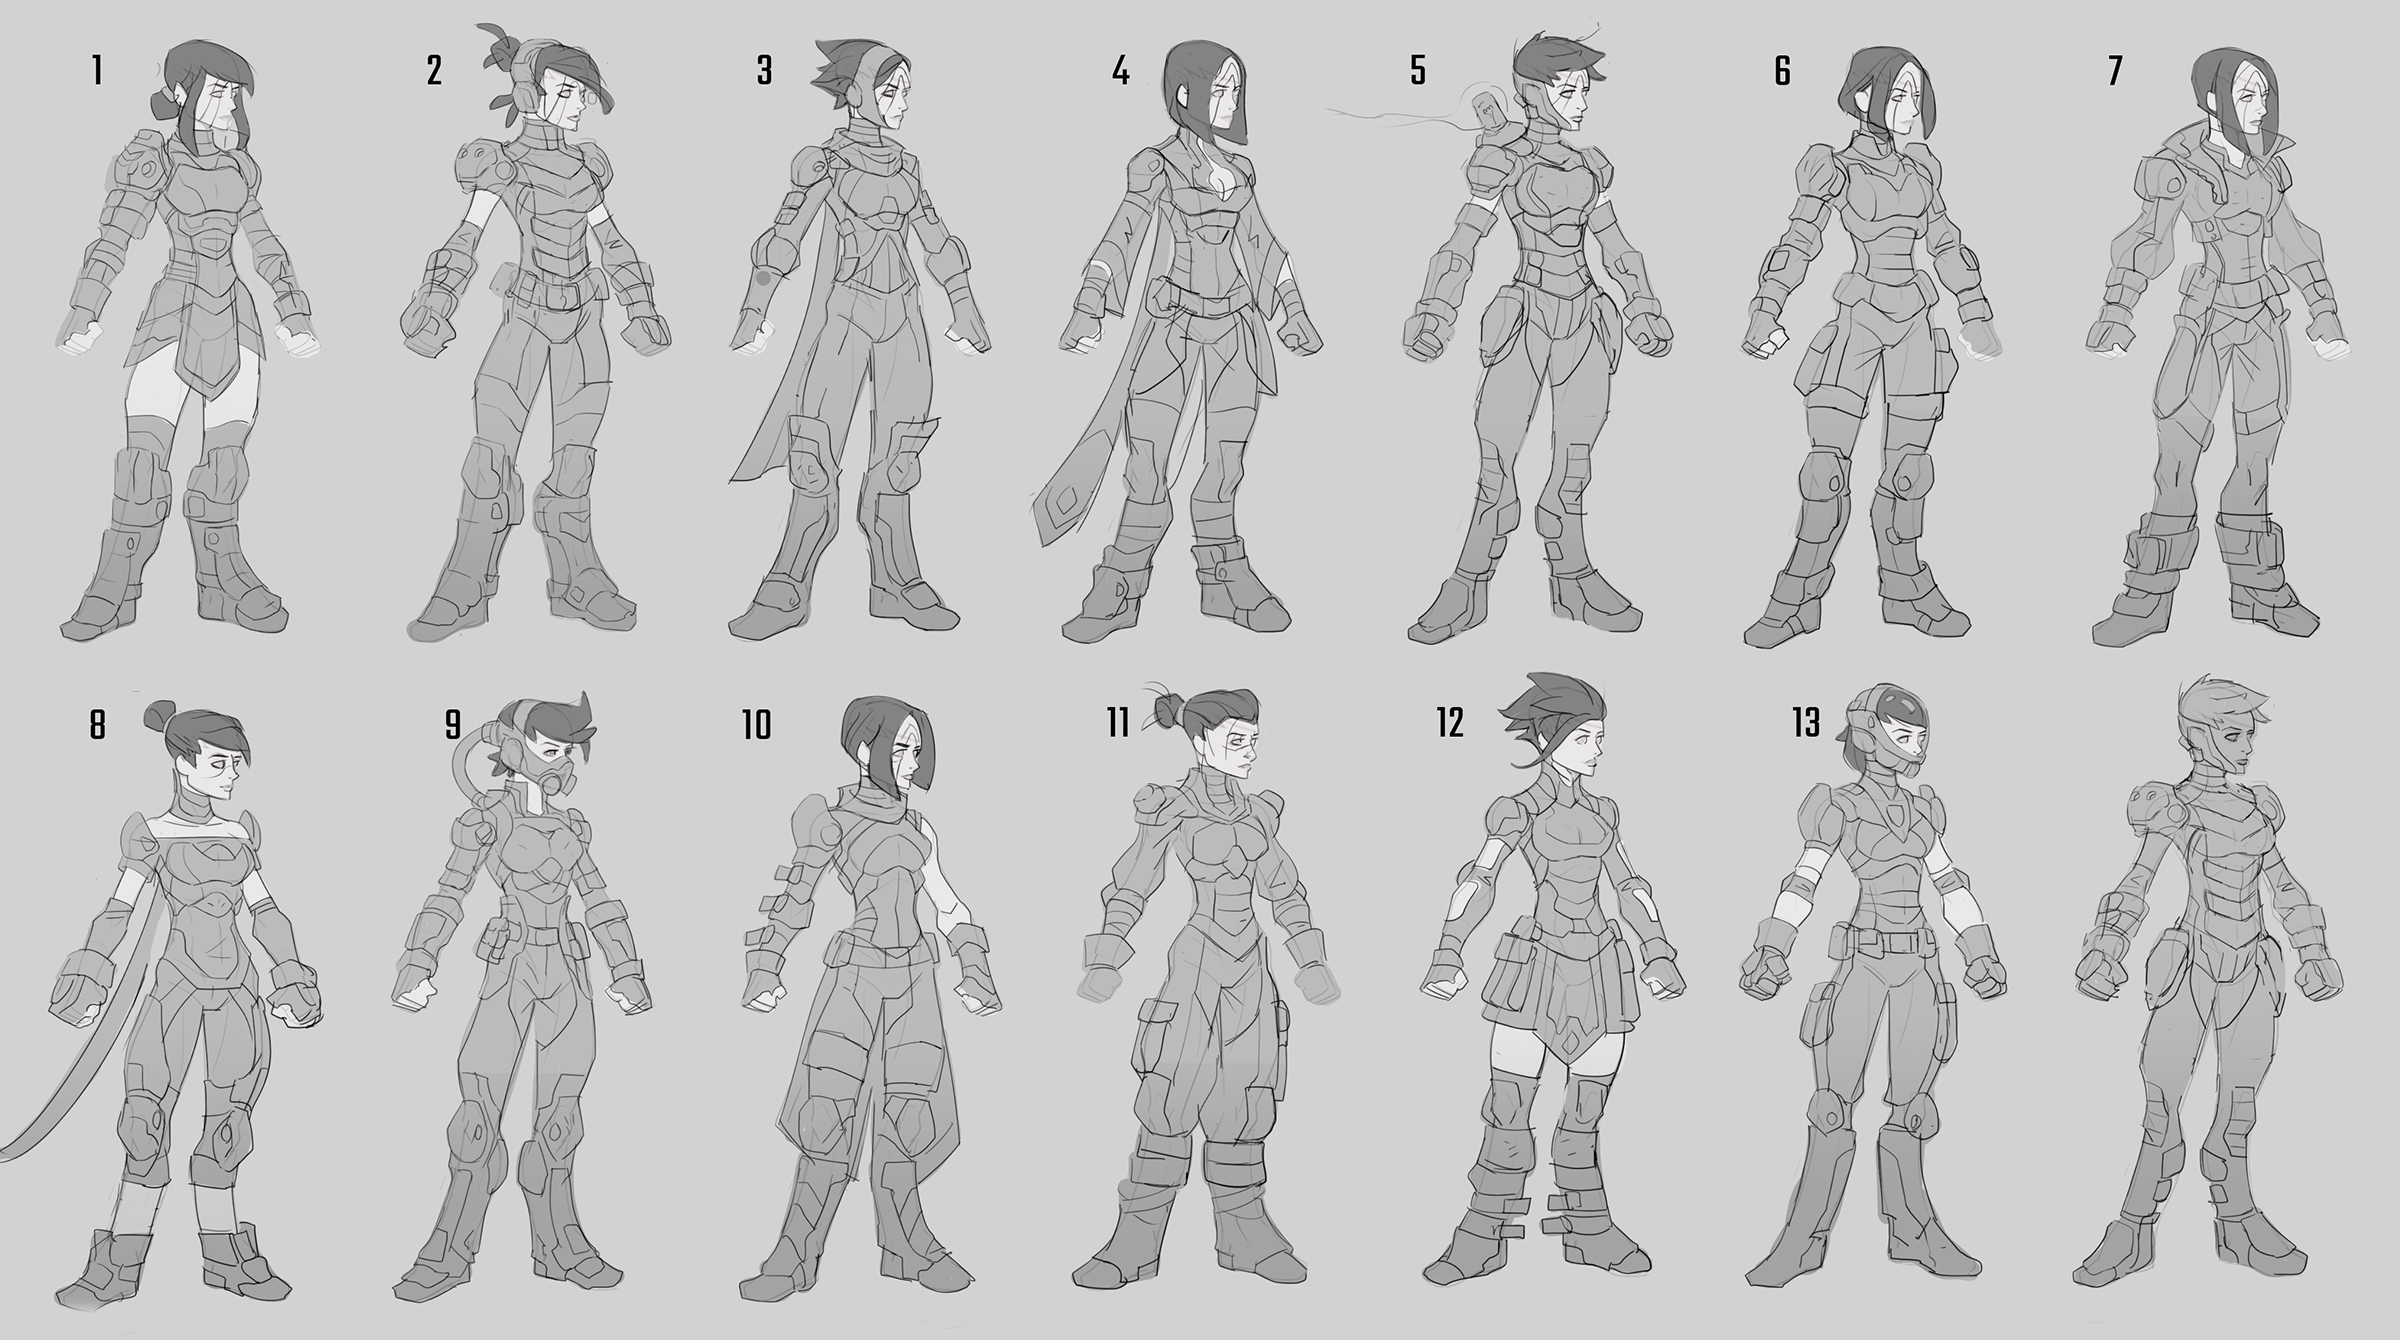 The team had a lot of freedom to create a tough female protagonist